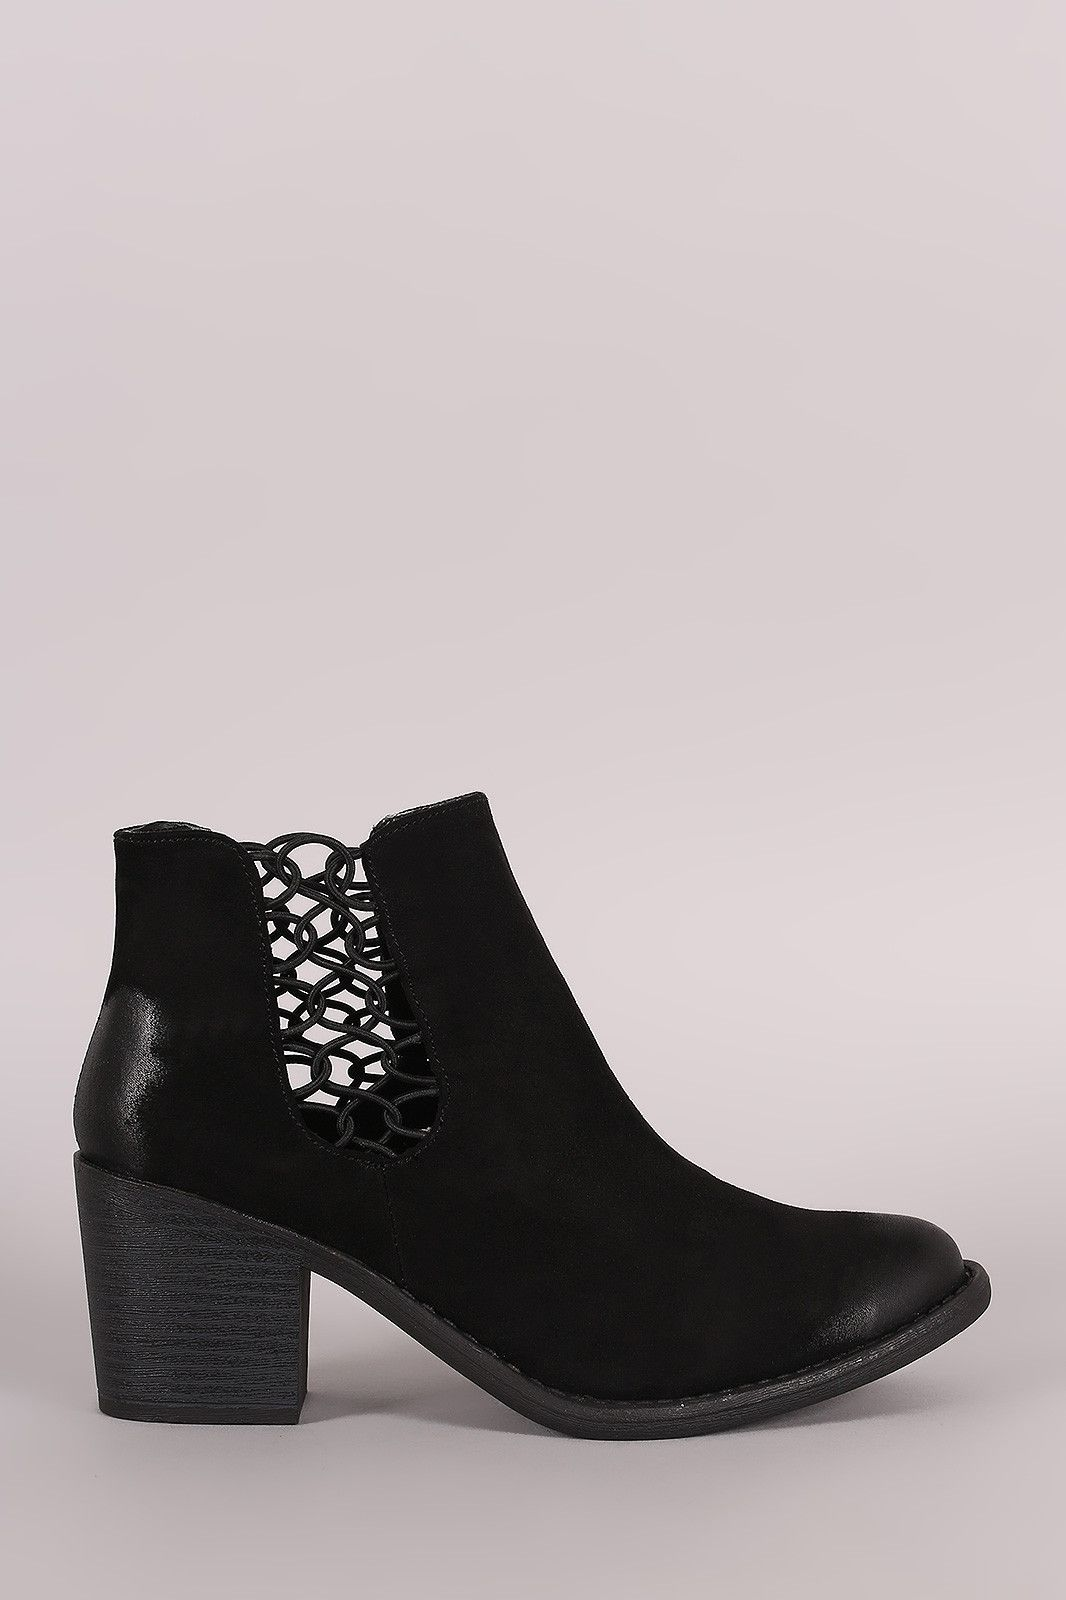 Qupid Women Black Cutout Lace Up Open Toe Booties Faux Suede